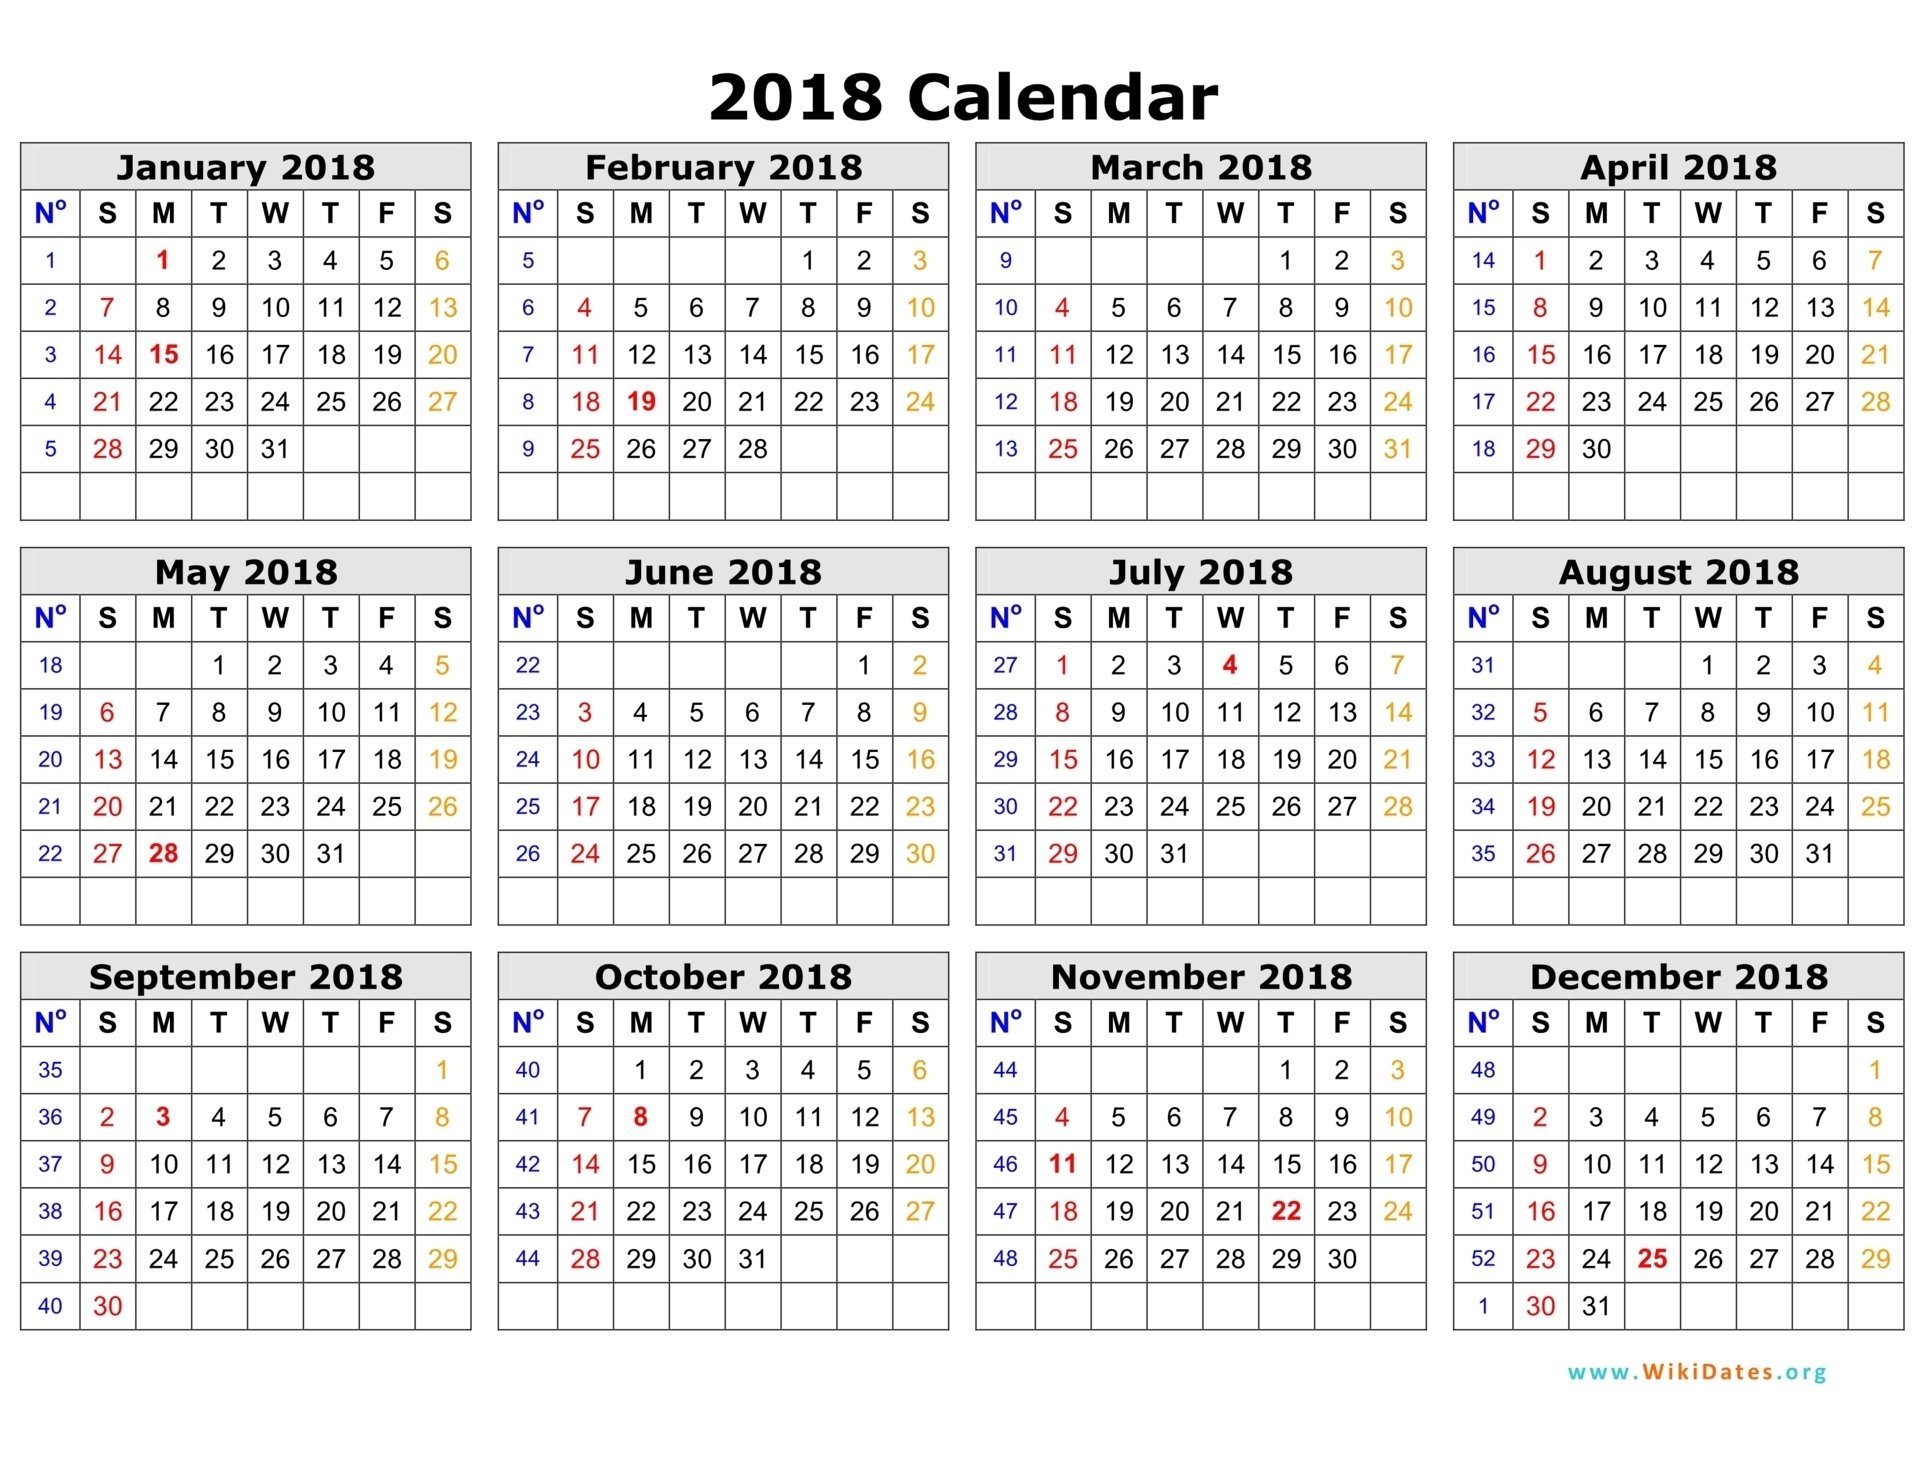 2018 printable calendar with bank holidays uk Depo Provera Printable Calendar 2018 August erdferdf